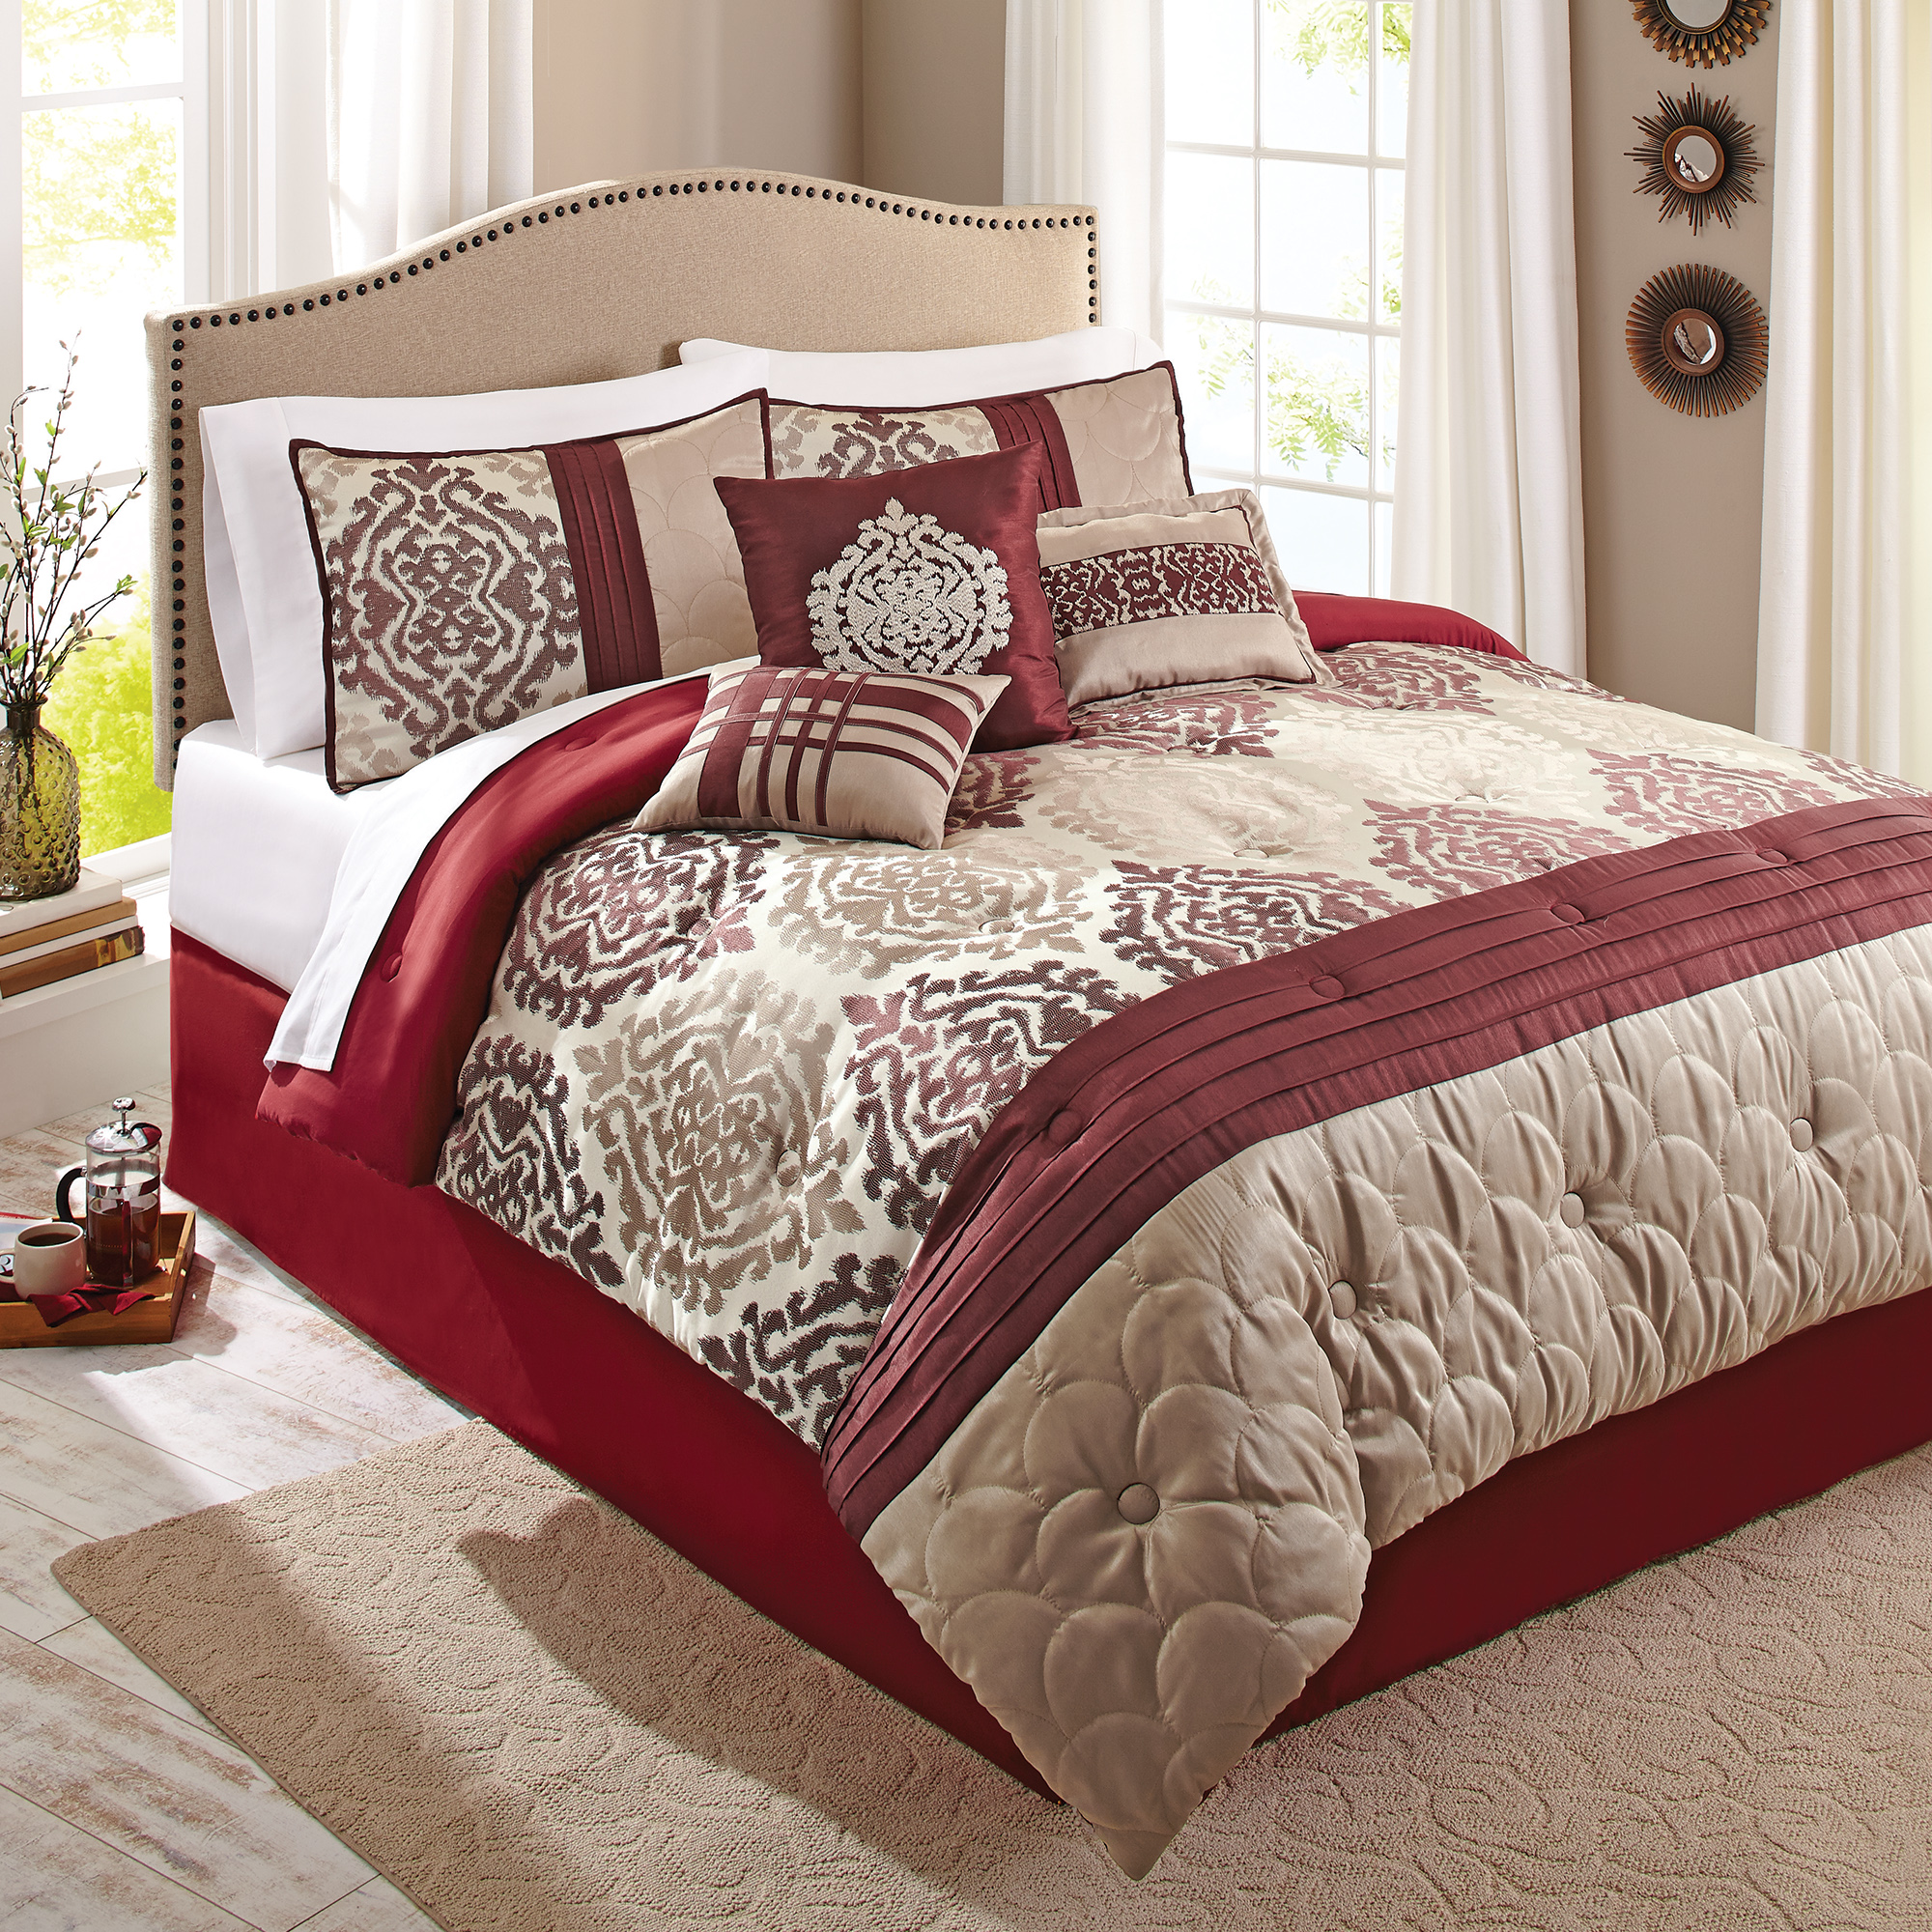 Better Homes and Gardens 7-Piece Bedding Comforter Set, Red Ikat